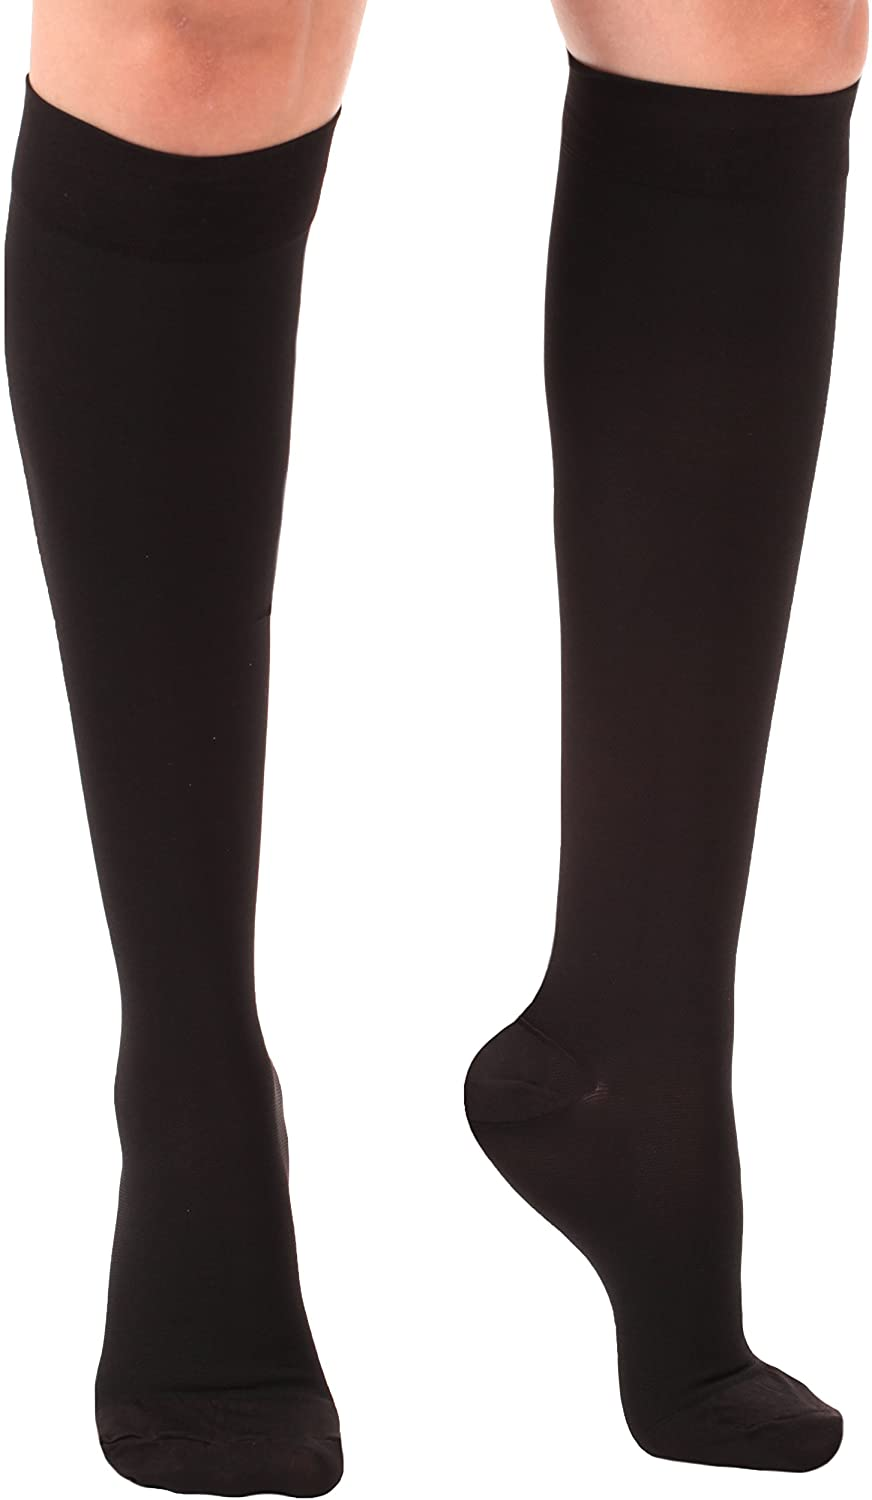 Absolute Support Short Length Medical Compression Stockings (Medium, Black)